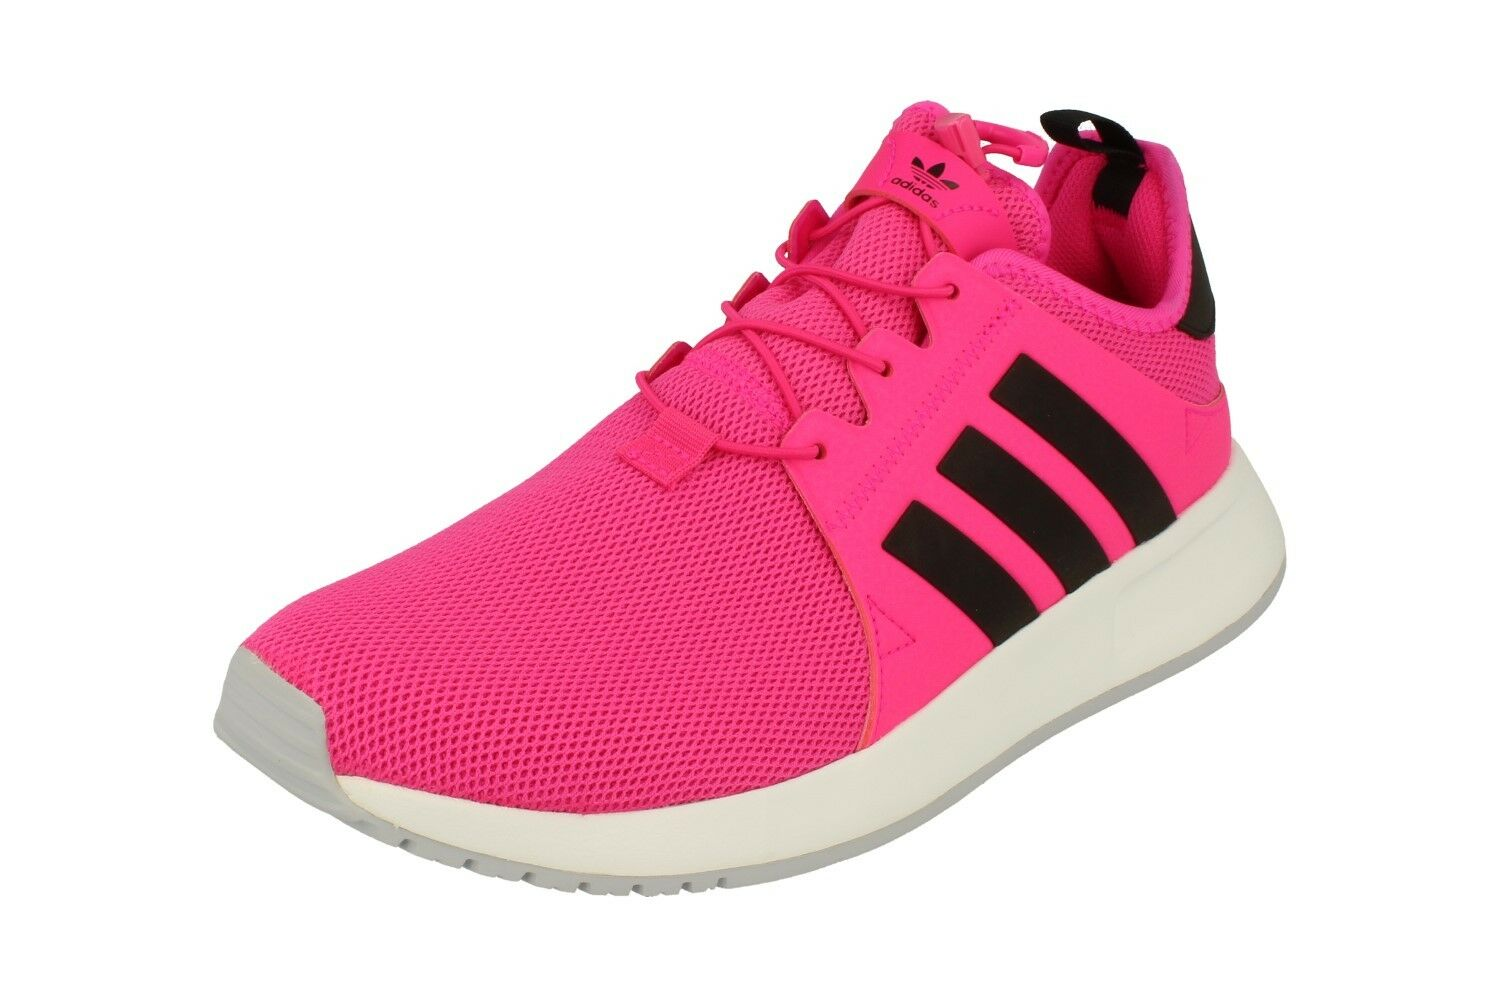 Adidas Originals X _ Plr Homme Running Baskets Chaussures Baskets BB1108 Chaussures Baskets 1874de